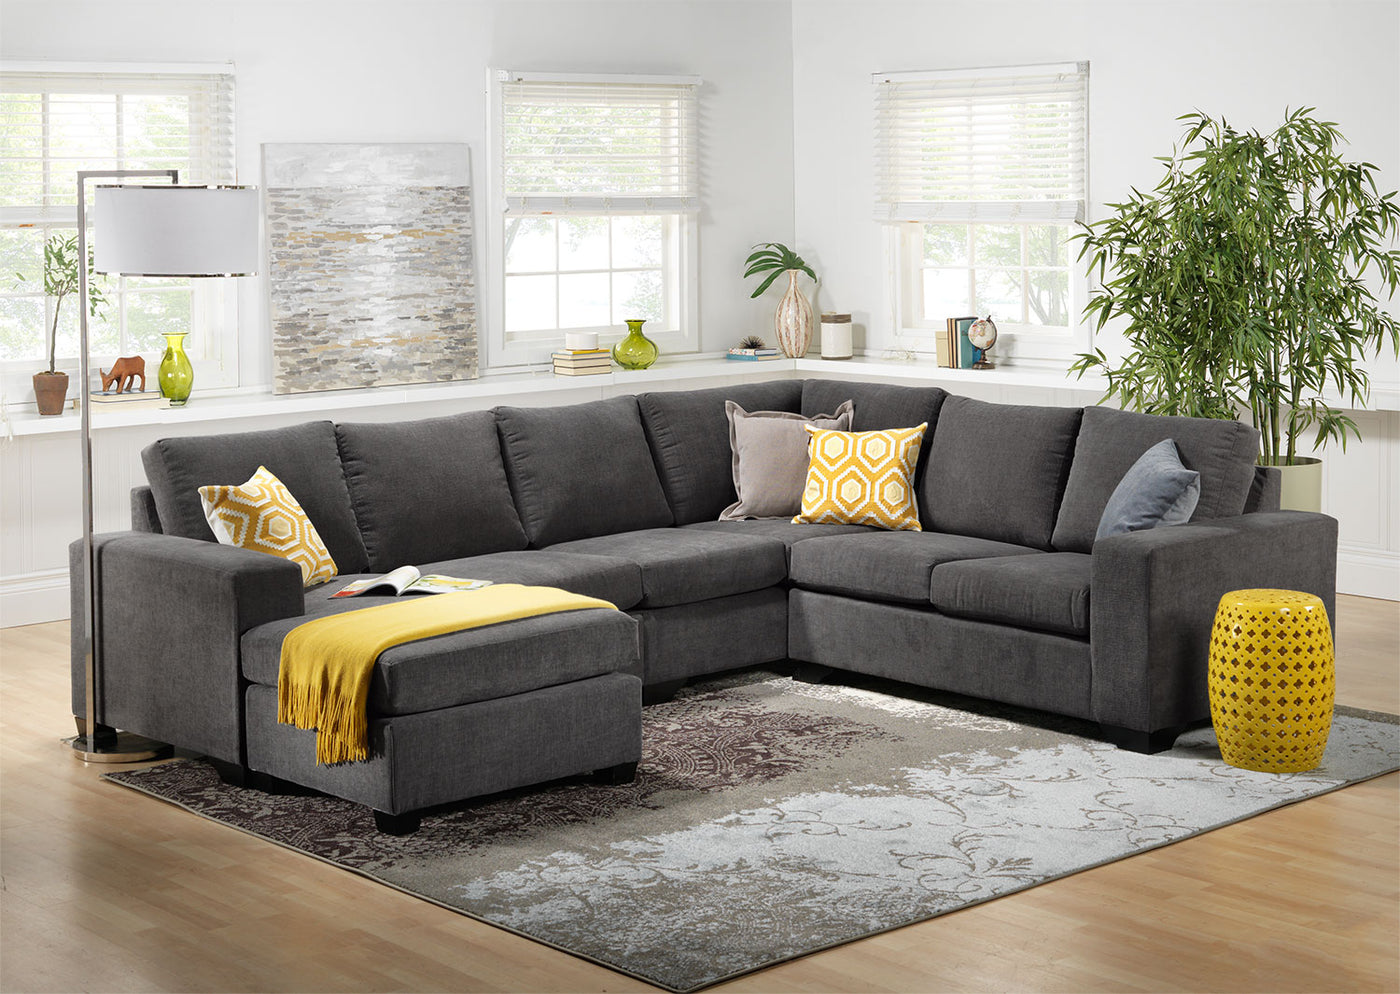 Fantastic Danielle 3 Piece Sectional With Left Facing Corner Wedge Grey Andrewgaddart Wooden Chair Designs For Living Room Andrewgaddartcom